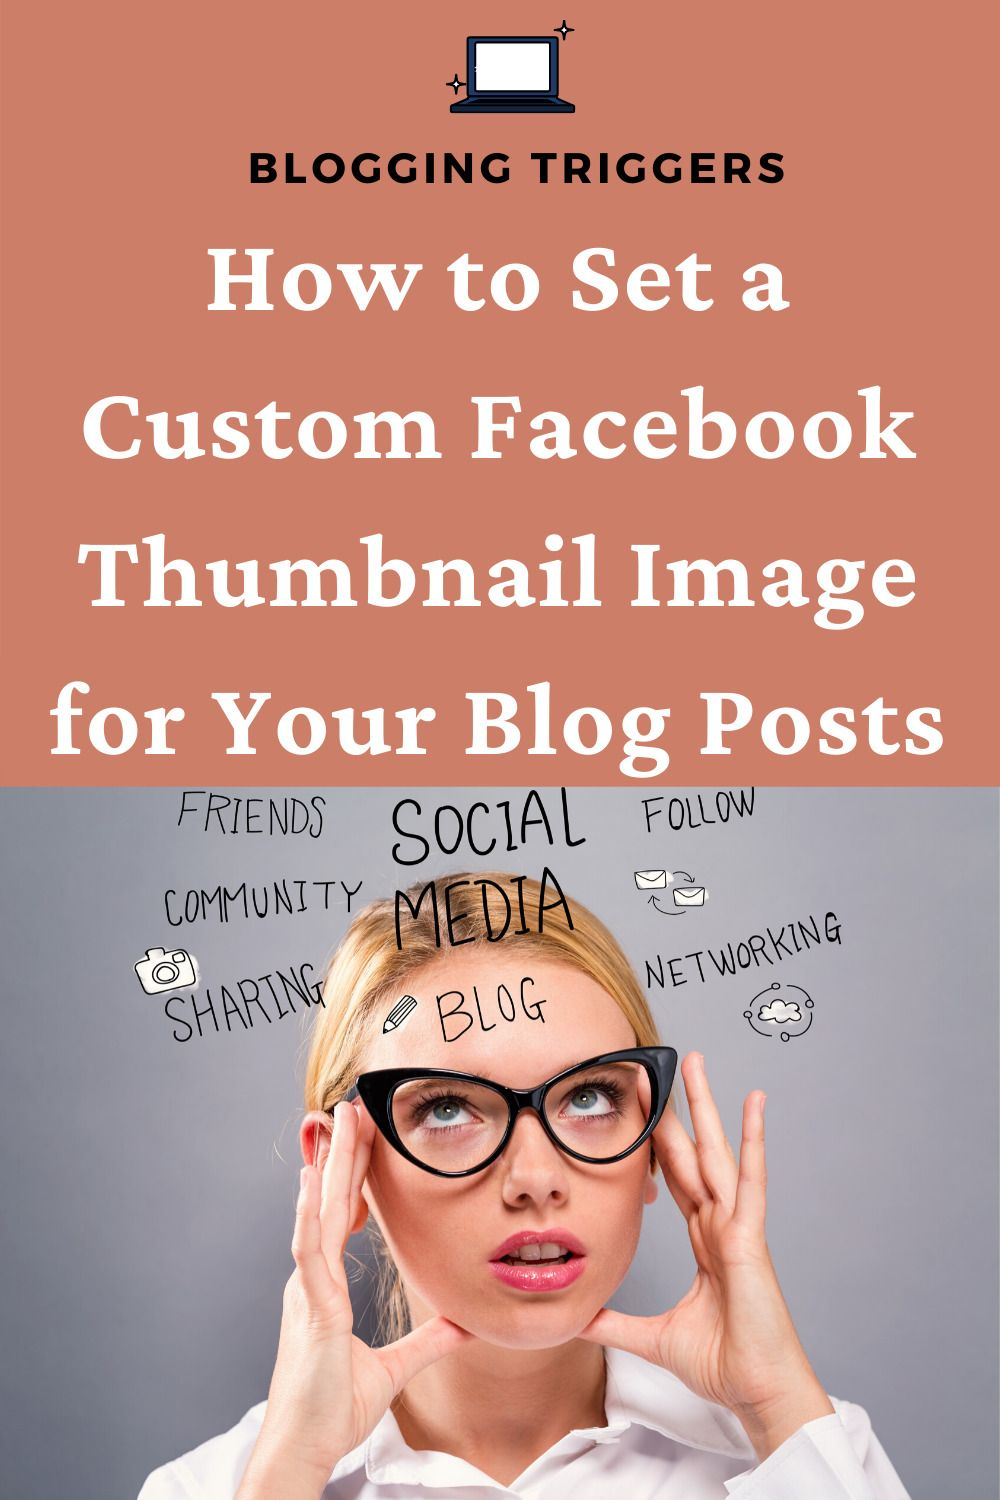 How to Set a Custom Facebook Thumbnail Image for Your Blog